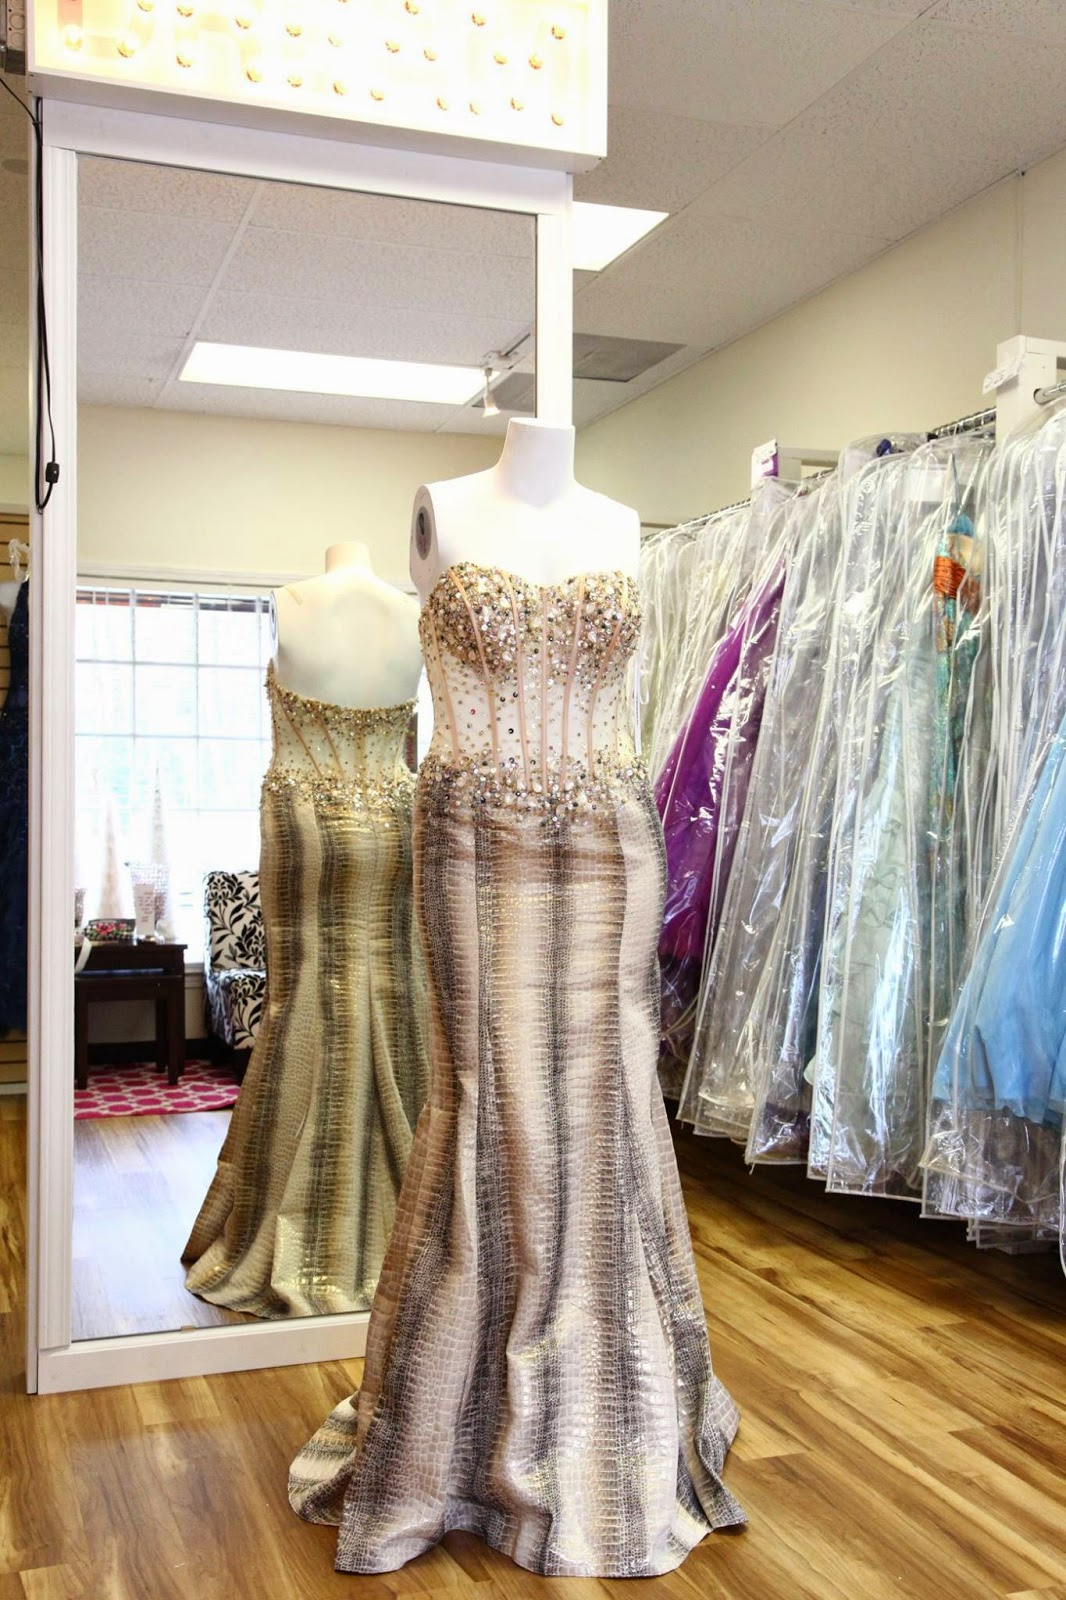 Consignment Wedding Dresses Atlanta Ga : Cash up front for your gently used prom dresses in atlanta